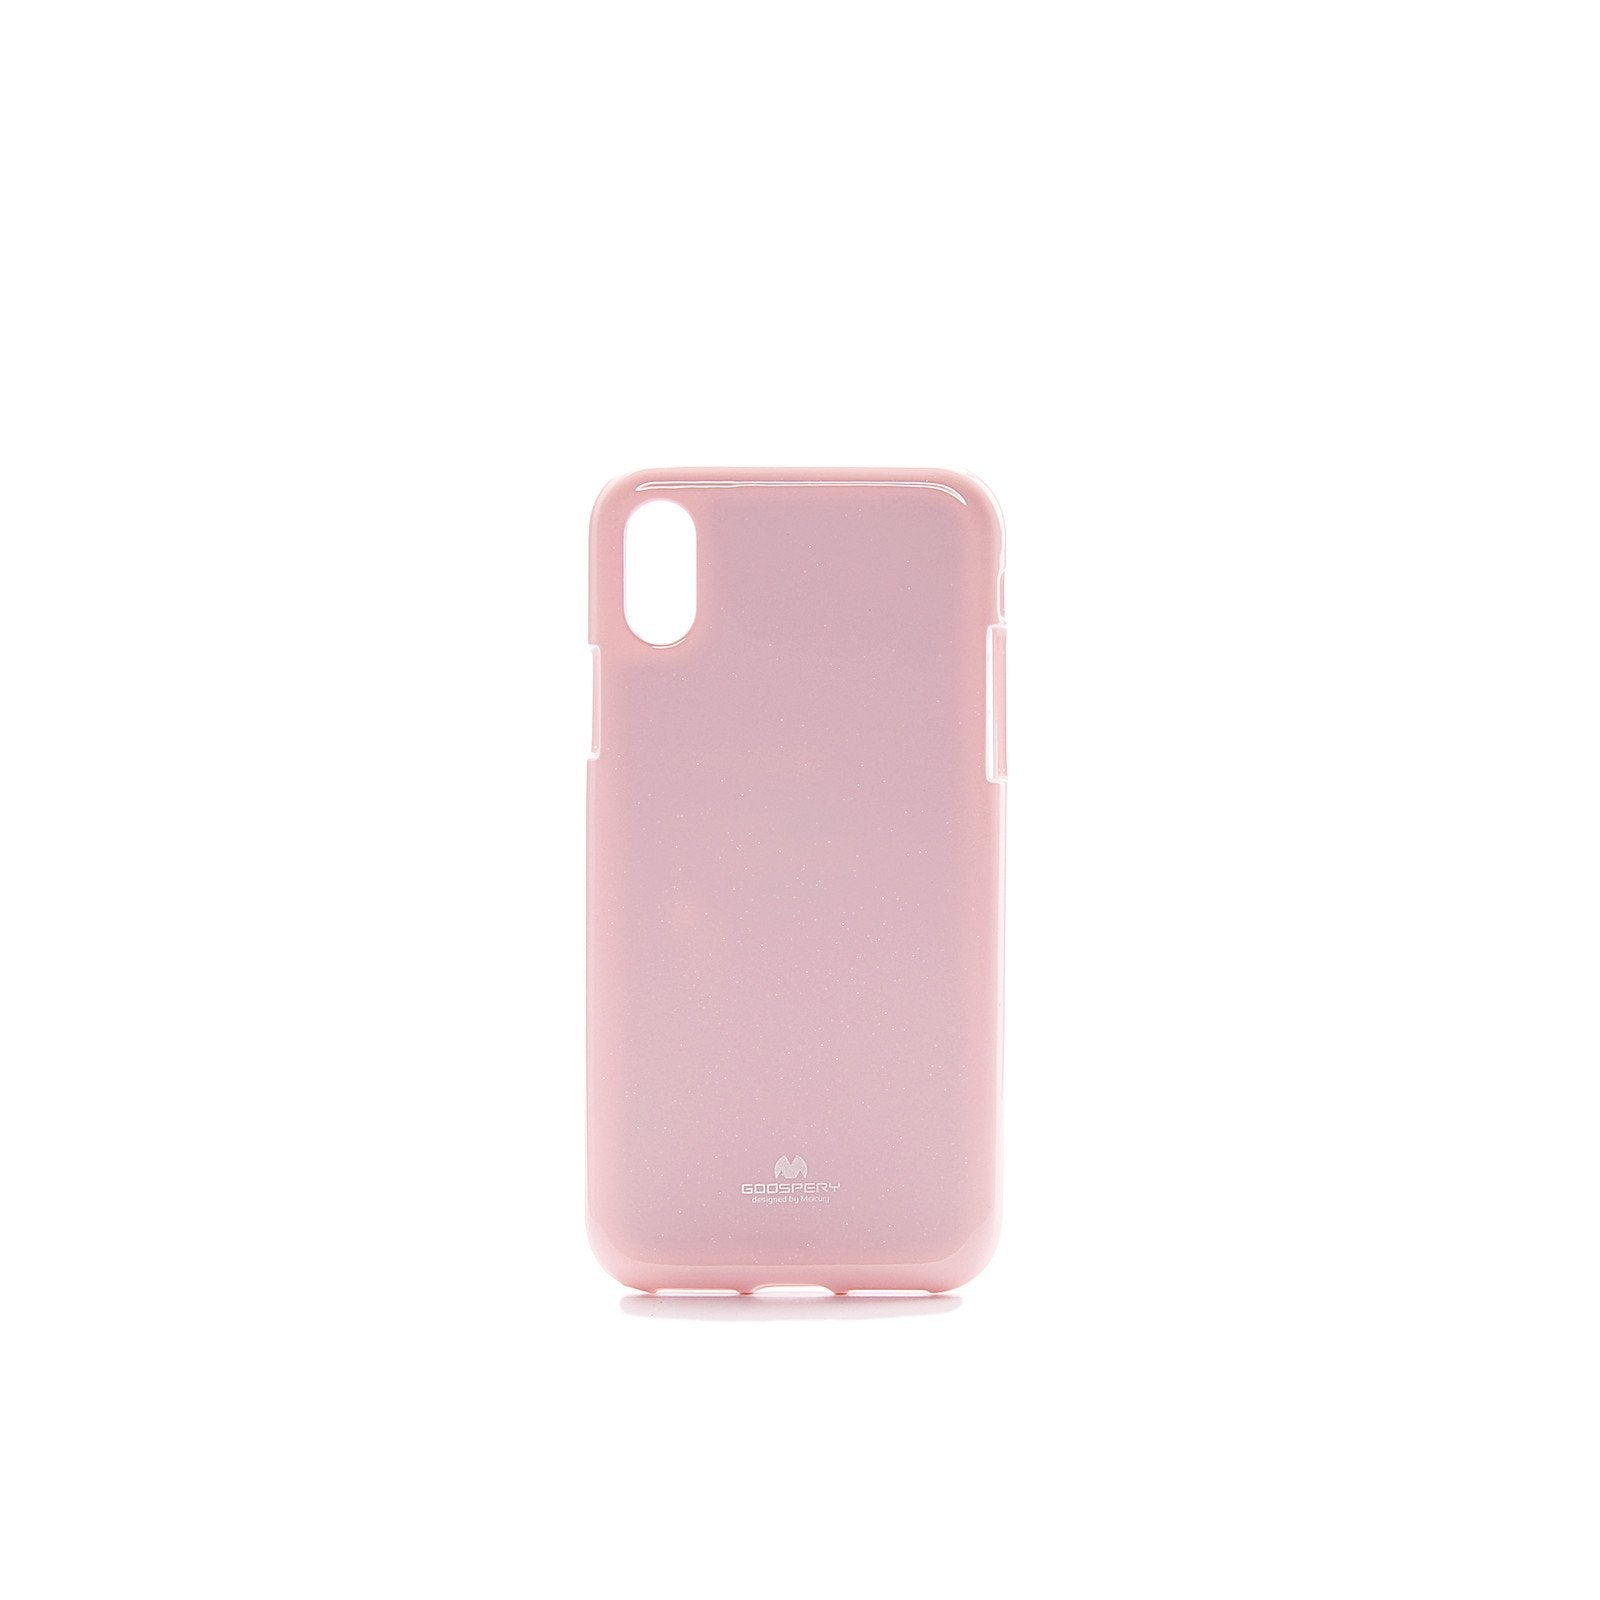 Authentic Iphone X Goospery Mercury Color Pearl Jelly Case Drop 8 Plus Pink Xr 61 Tpu